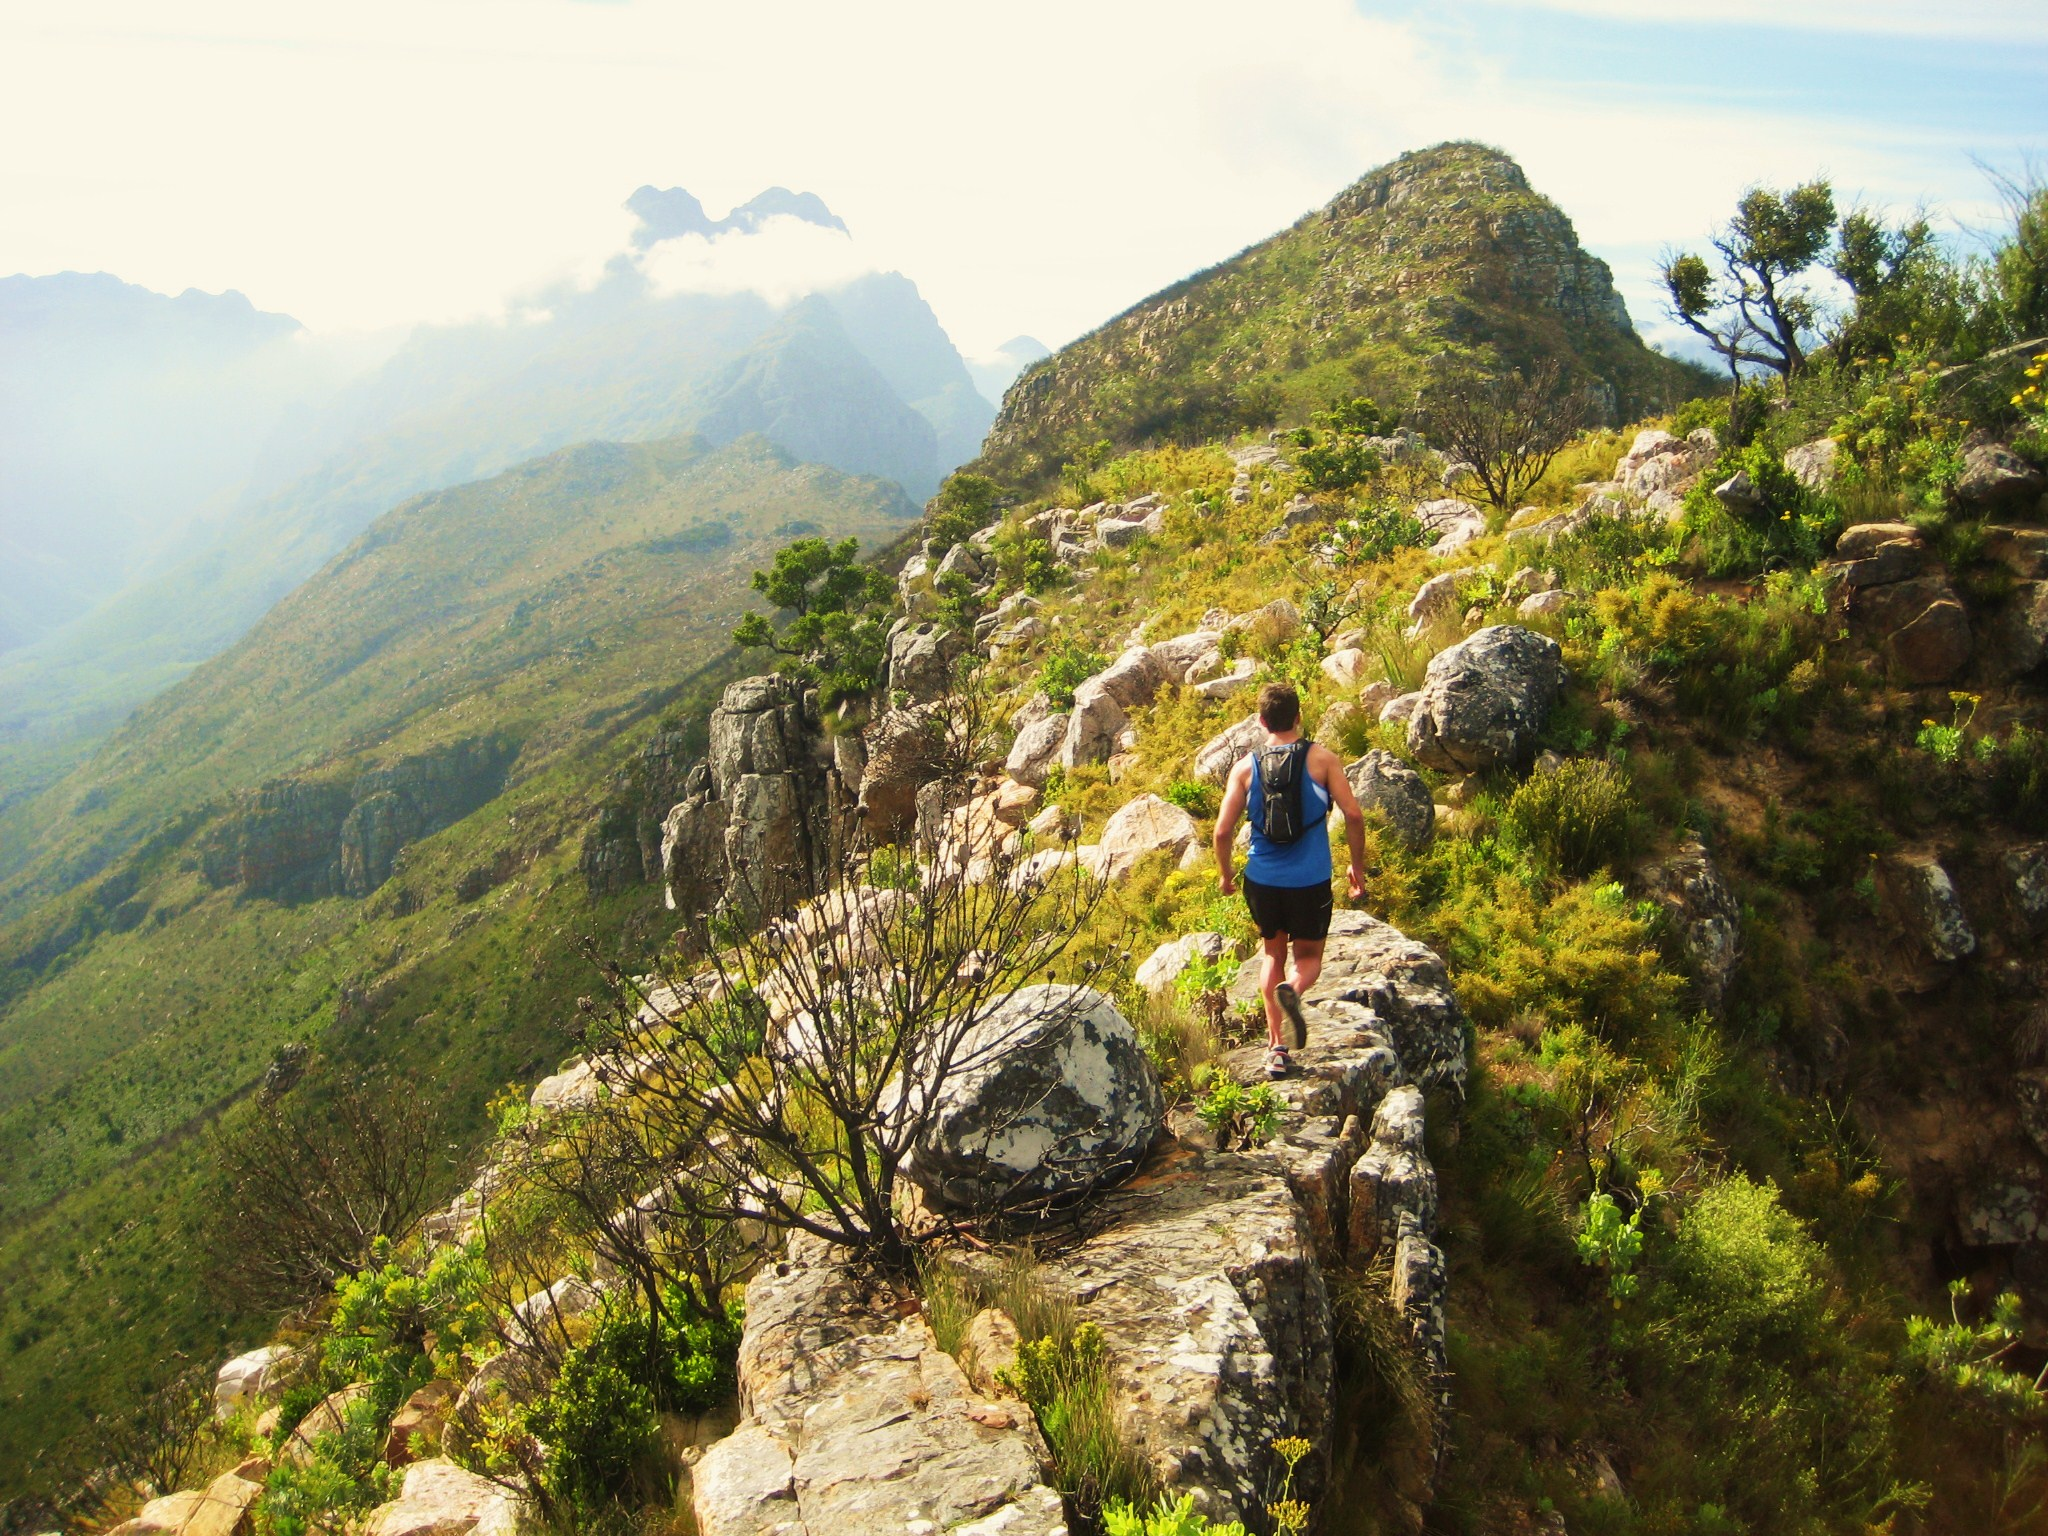 Trail Running Wallpaper - WallpaperSafari